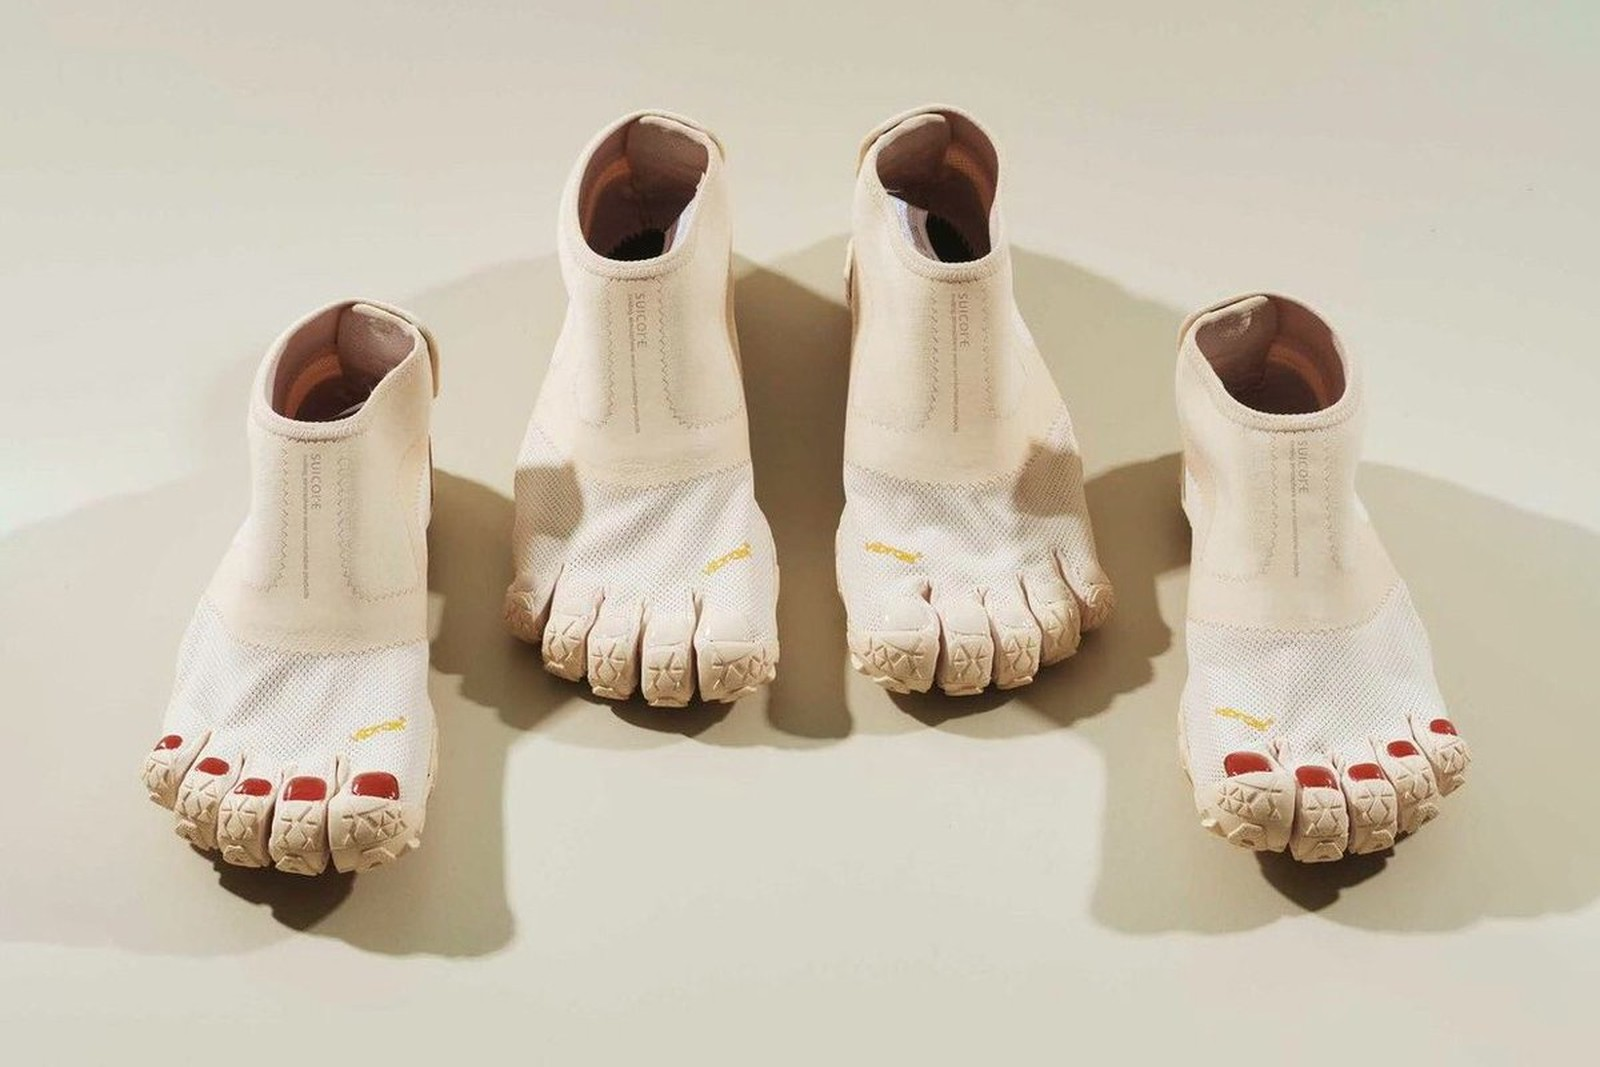 FiveFingers Shoes with painted toenails